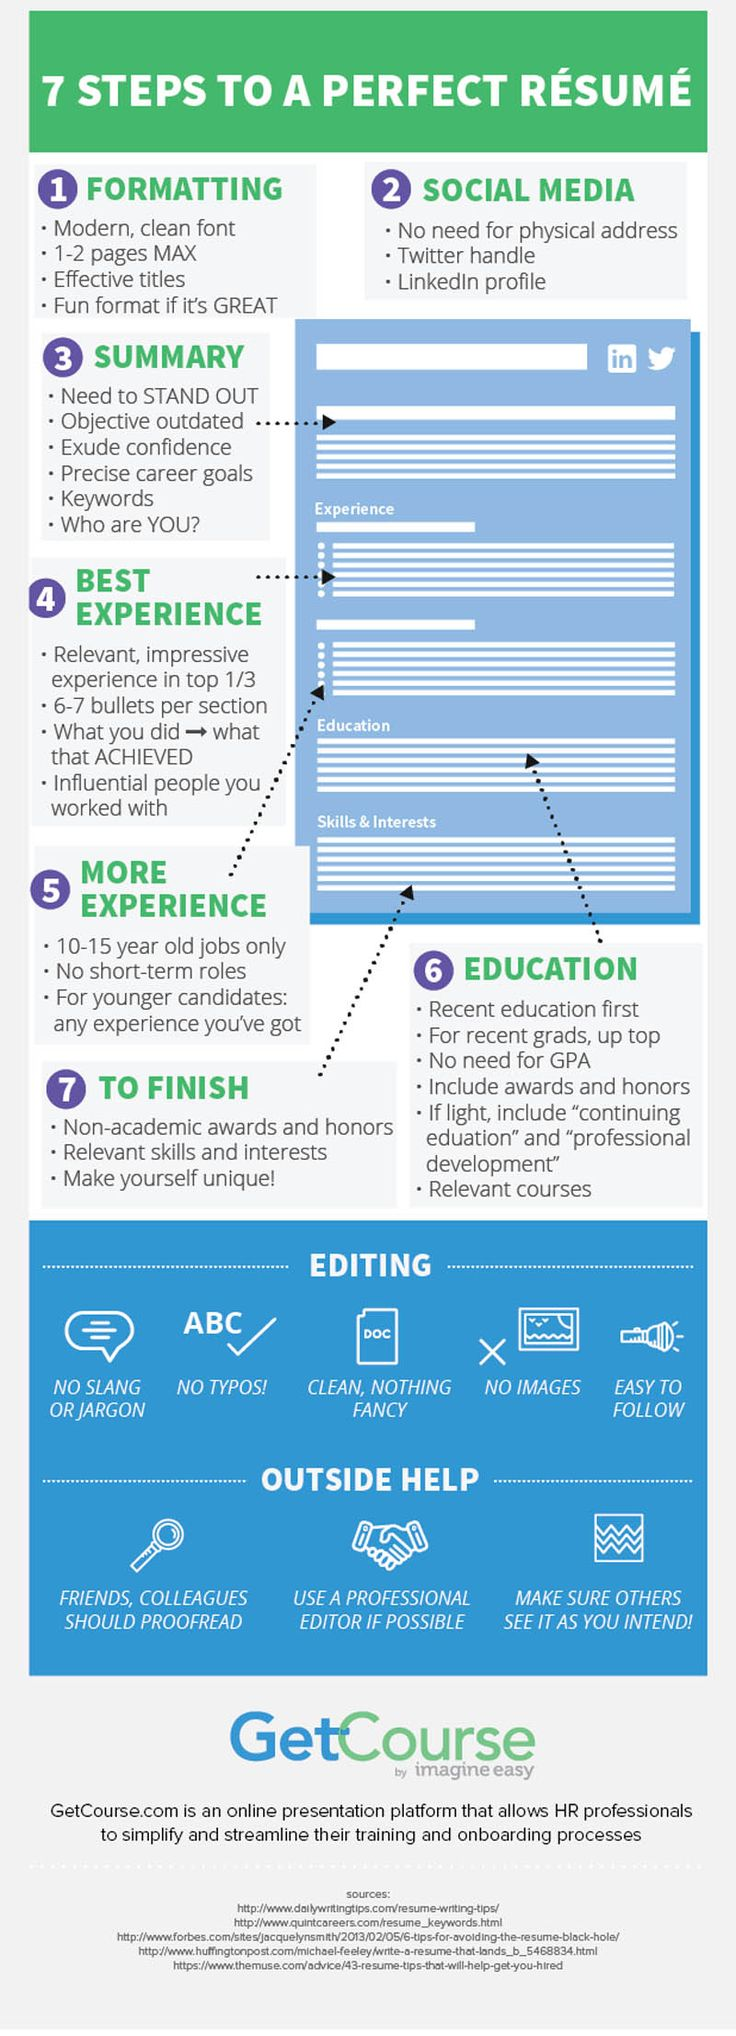 Great 1 Page Resume Format Thick 1 Week Schedule Template Regular 10 Tips For A Great Resume 100 Chart Template Young 100 Dollar Bill Template White100 Resume Words 25  Best Ideas About Perfect Resume On Pinterest | Resume Tips ..